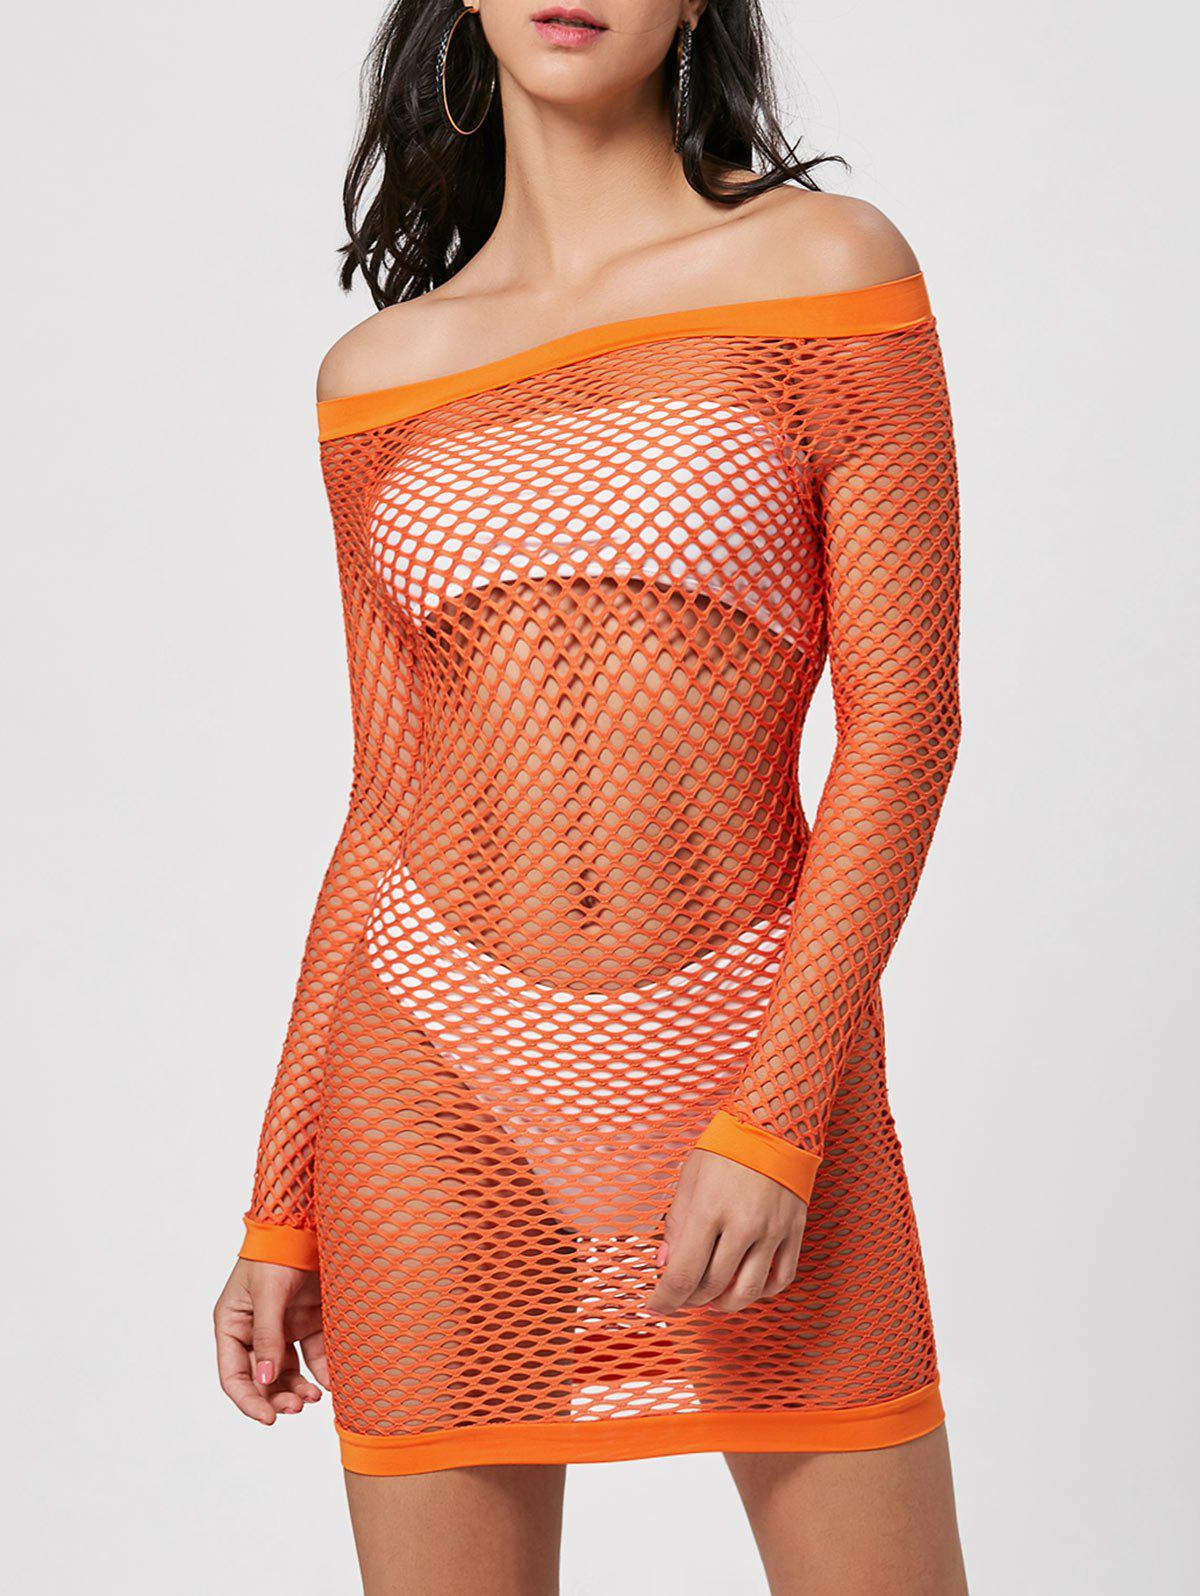 Shop Long Sleeve Off The Shoulder Sheer Hot Dress